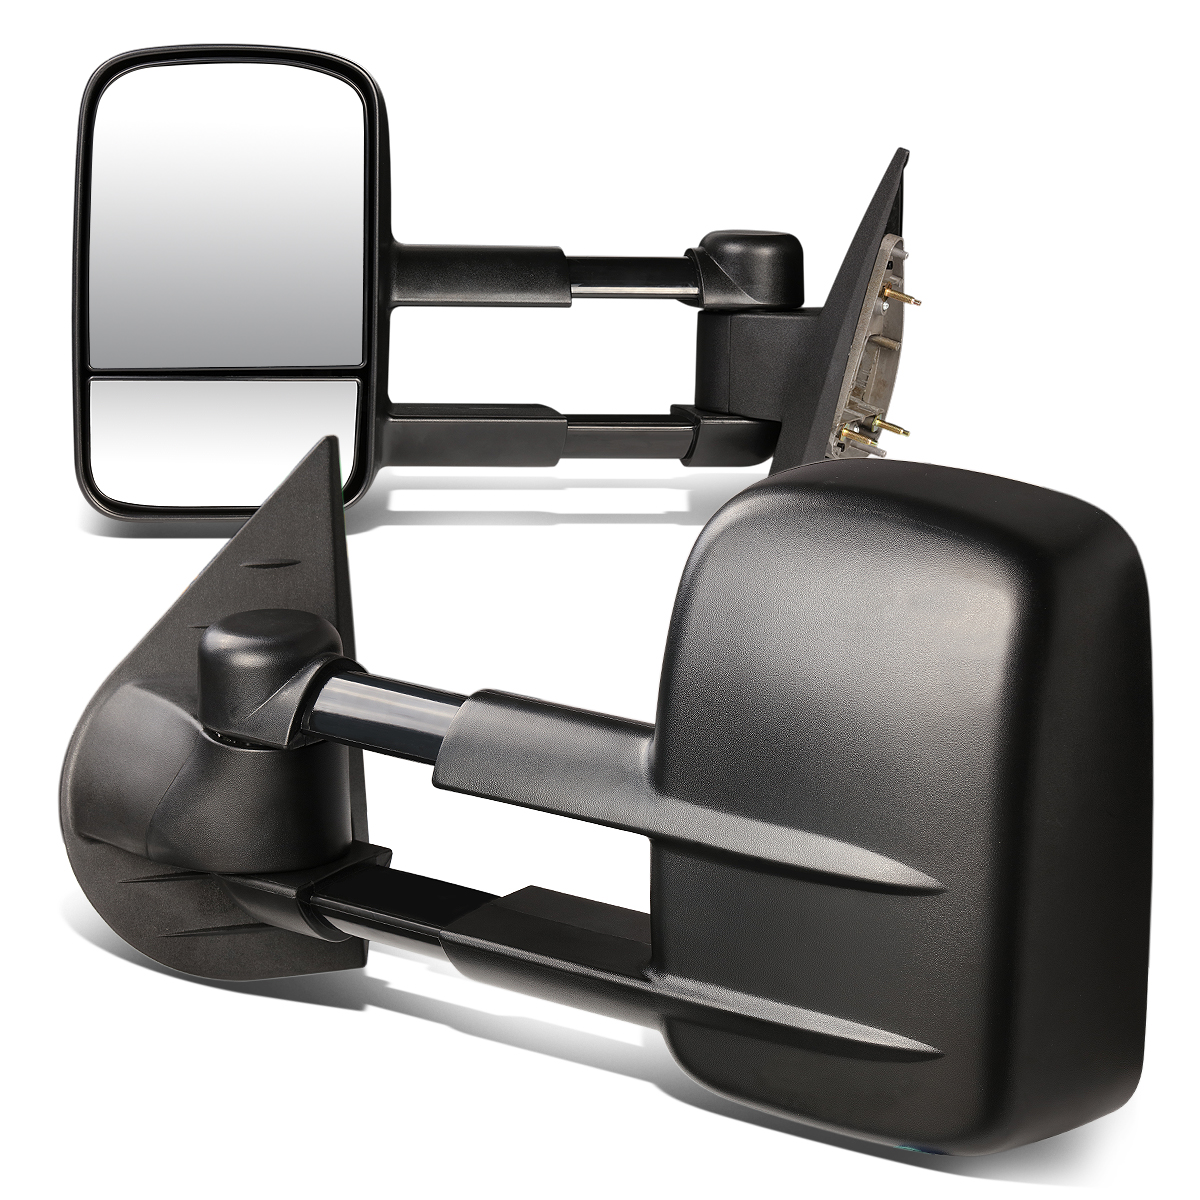 For 07-13 Silverado / Sierra HD Pair of Black Textured Telescoping Manual Extenable Side Towing Mirrors 08 09 10 11 12